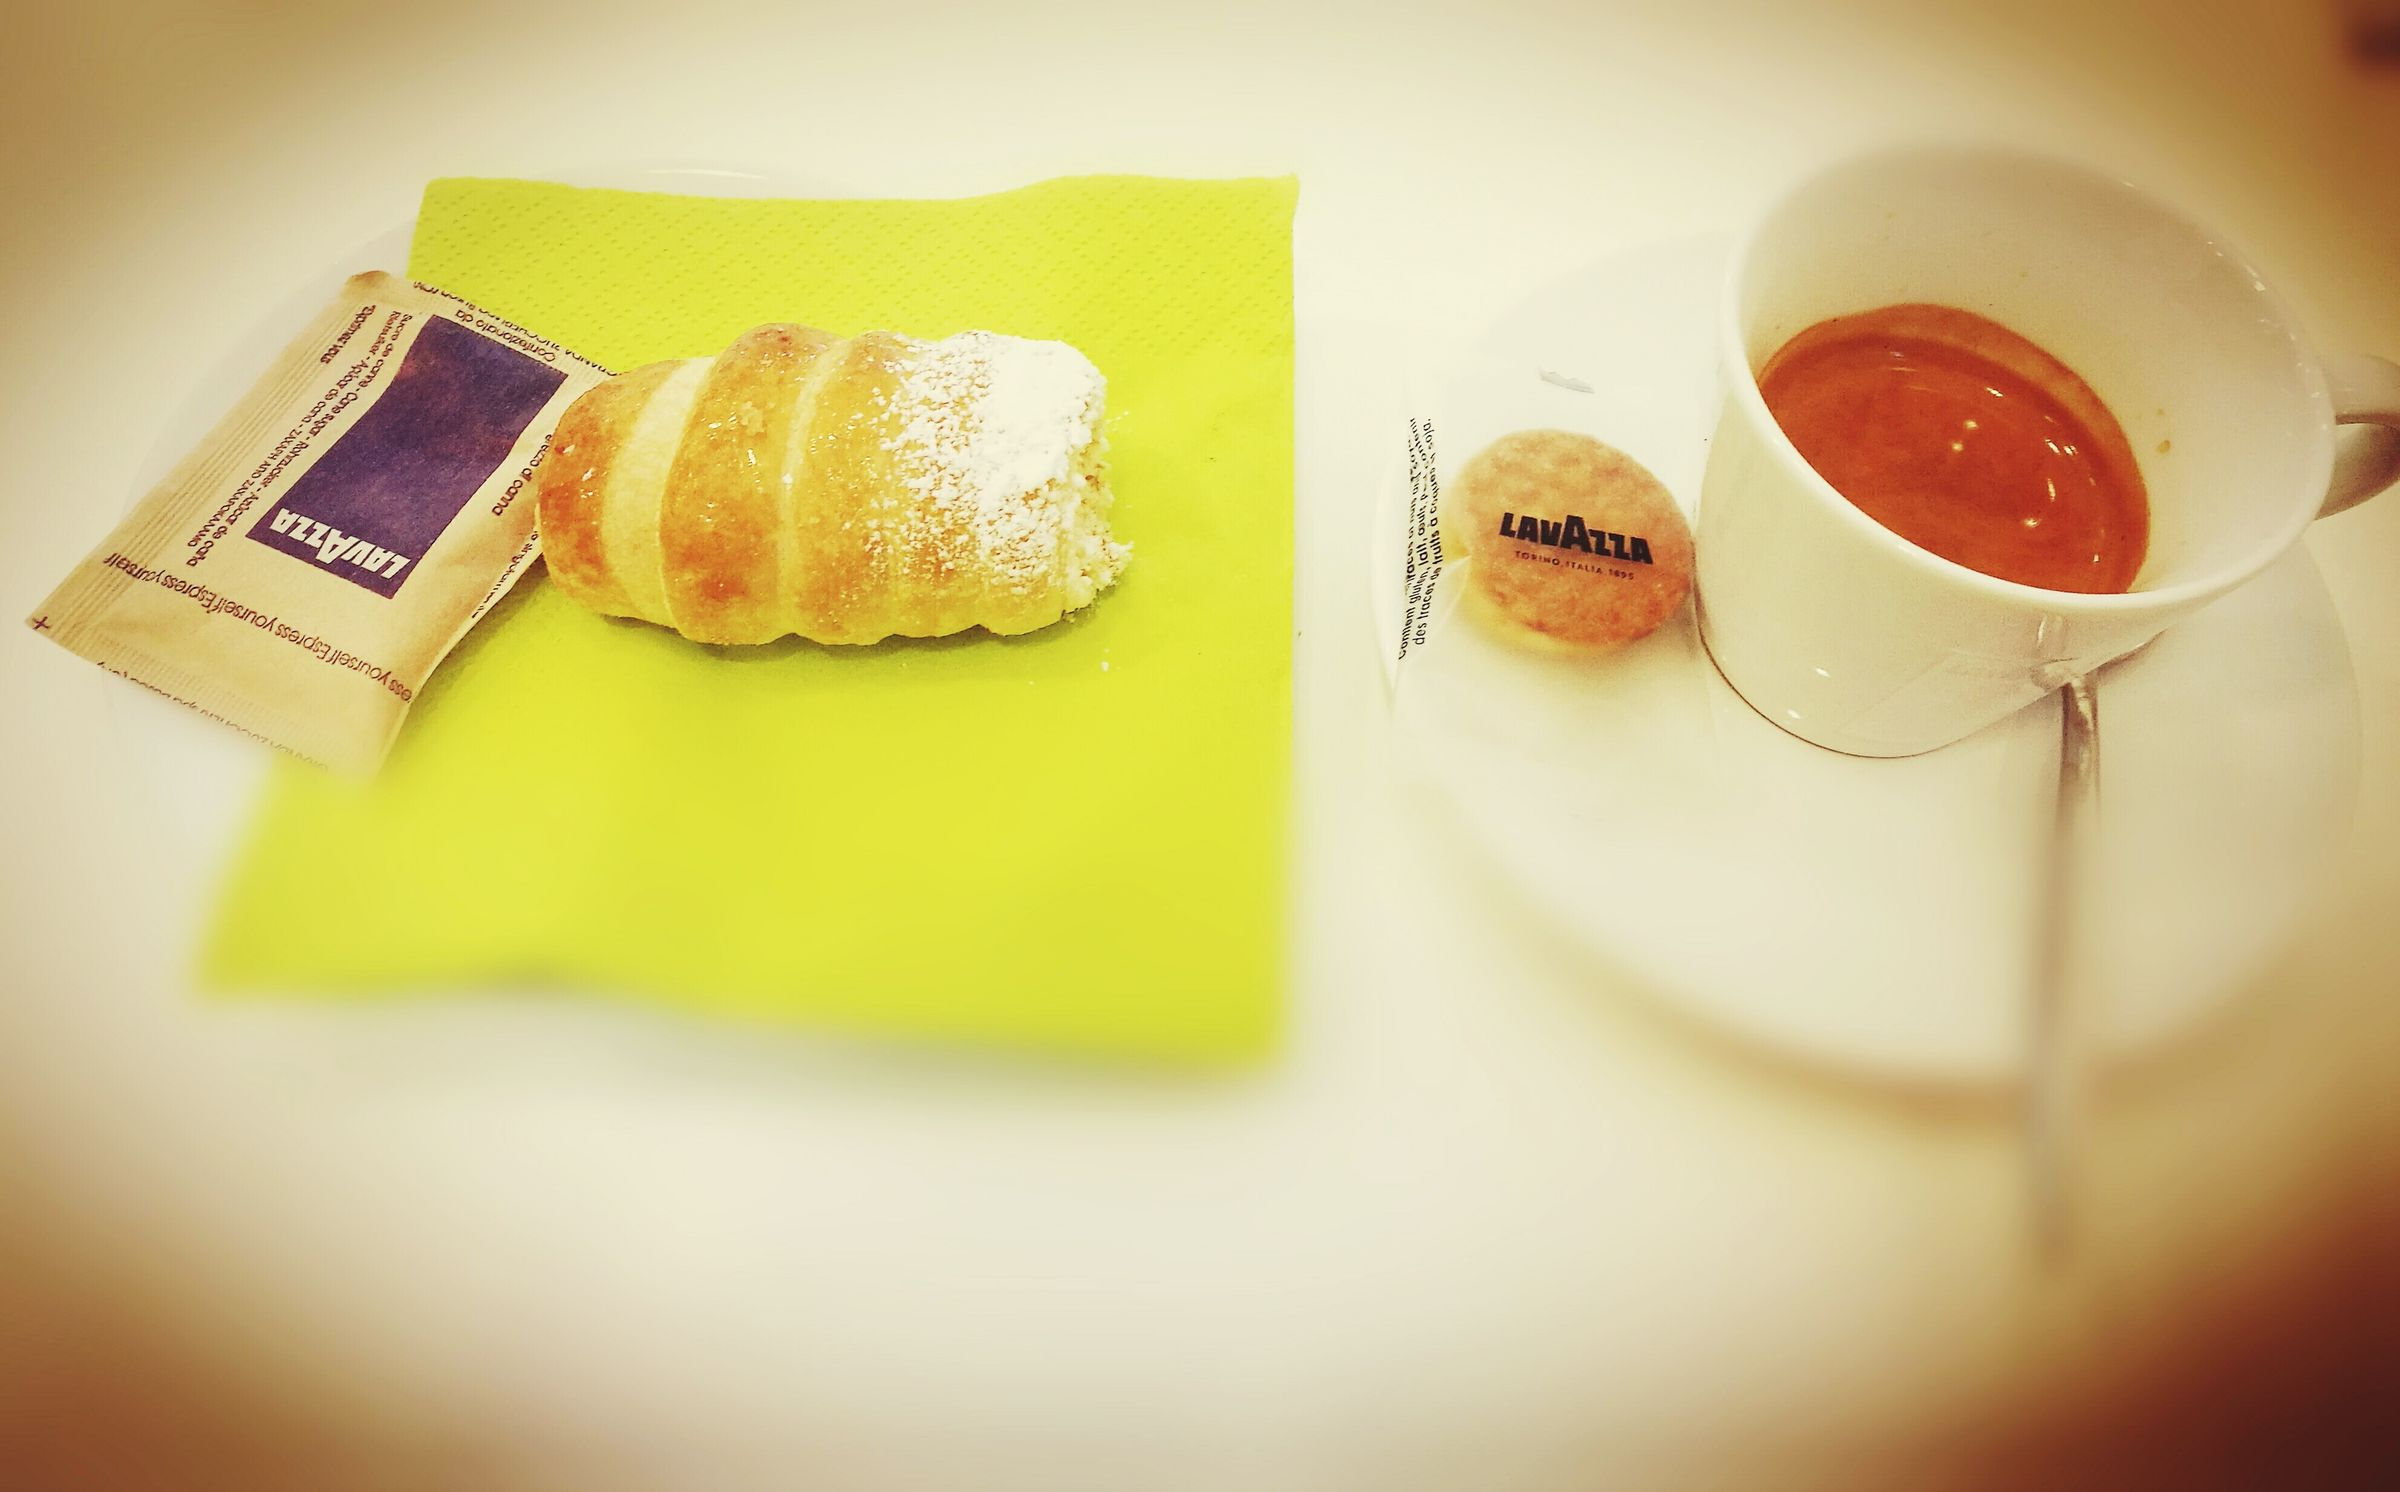 Food And Drink Indoors  Ready-to-eat Coffee Break Pasticceria Cannoncini